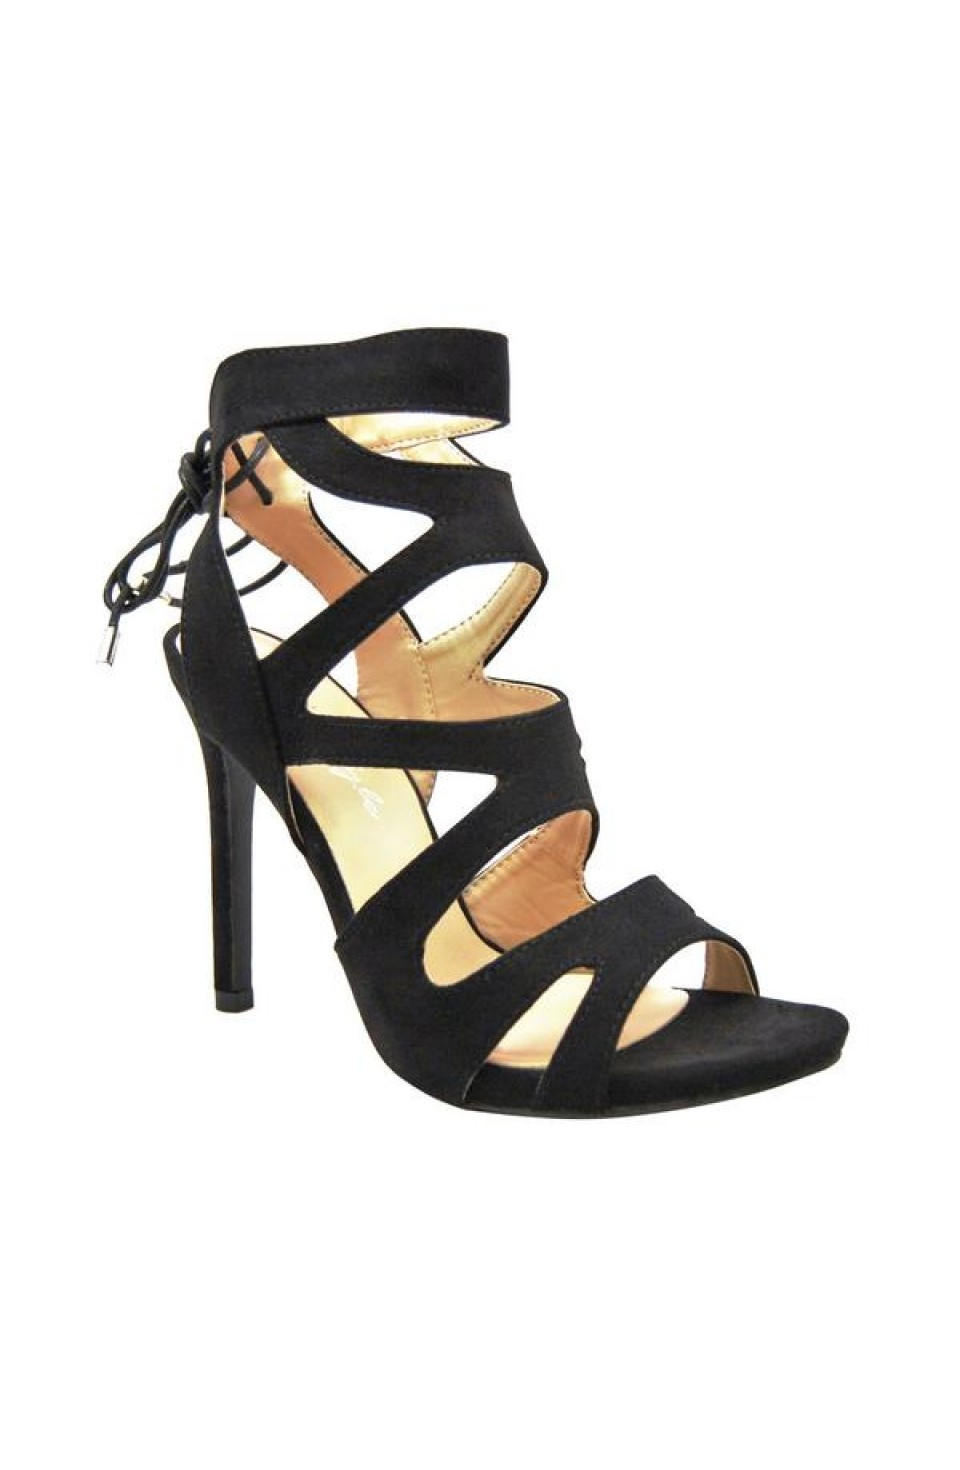 Women's Black Estrella 4-inch Heeled Sandal with Lace-up Back